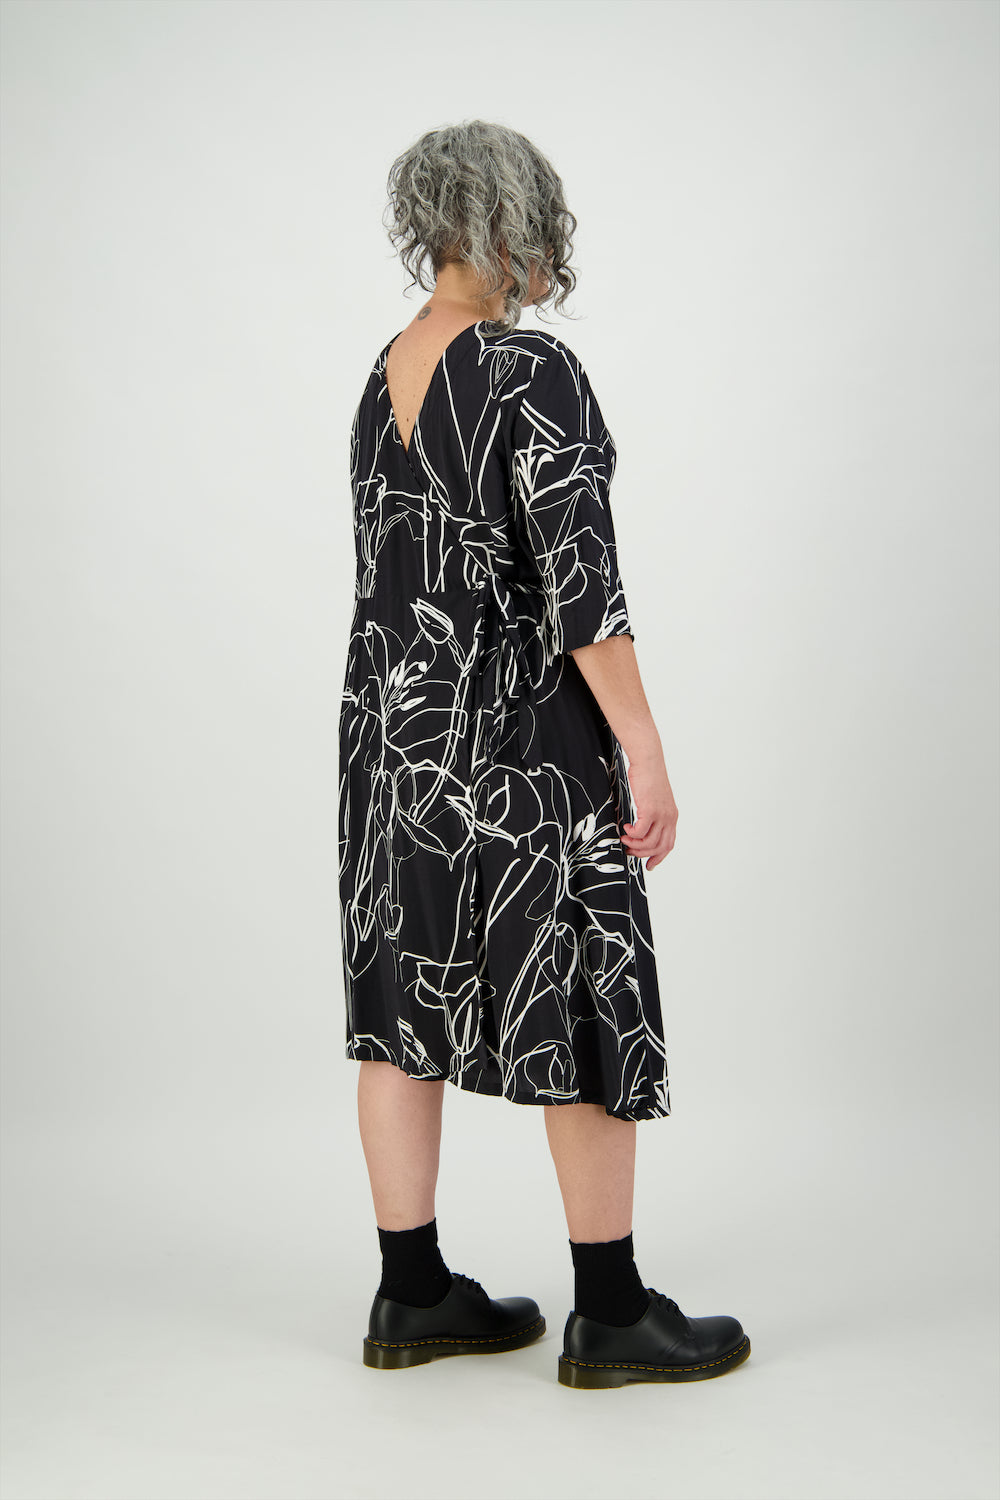 Black & White | Floral | Lucy Wrap Dress